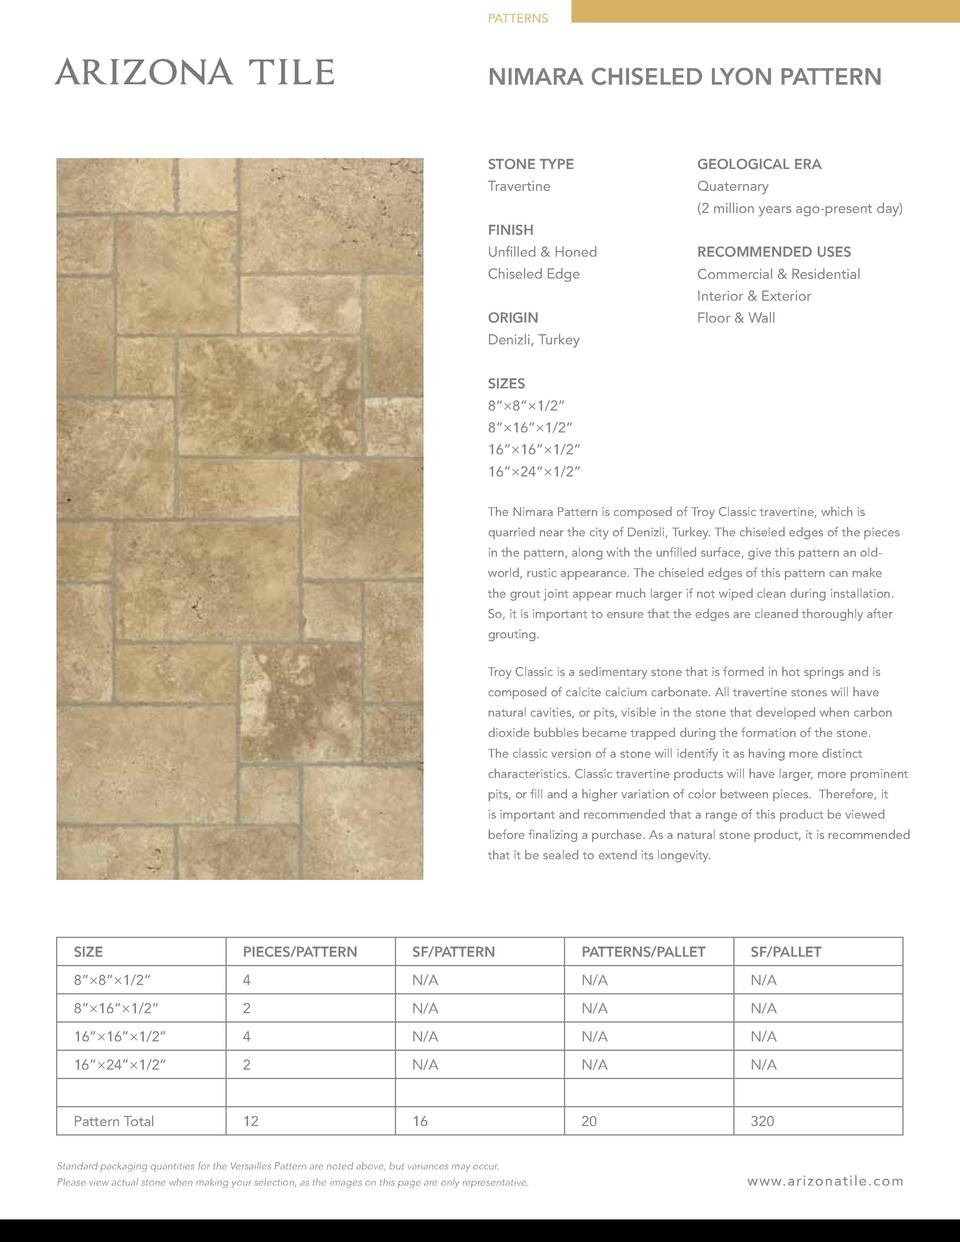 PATTERNS  NIMARA CHISELED LYON PATTERN  STONE TYPE  GEOLOGICAL ERA  Travertine  Quaternary  2 million years ago-present da...